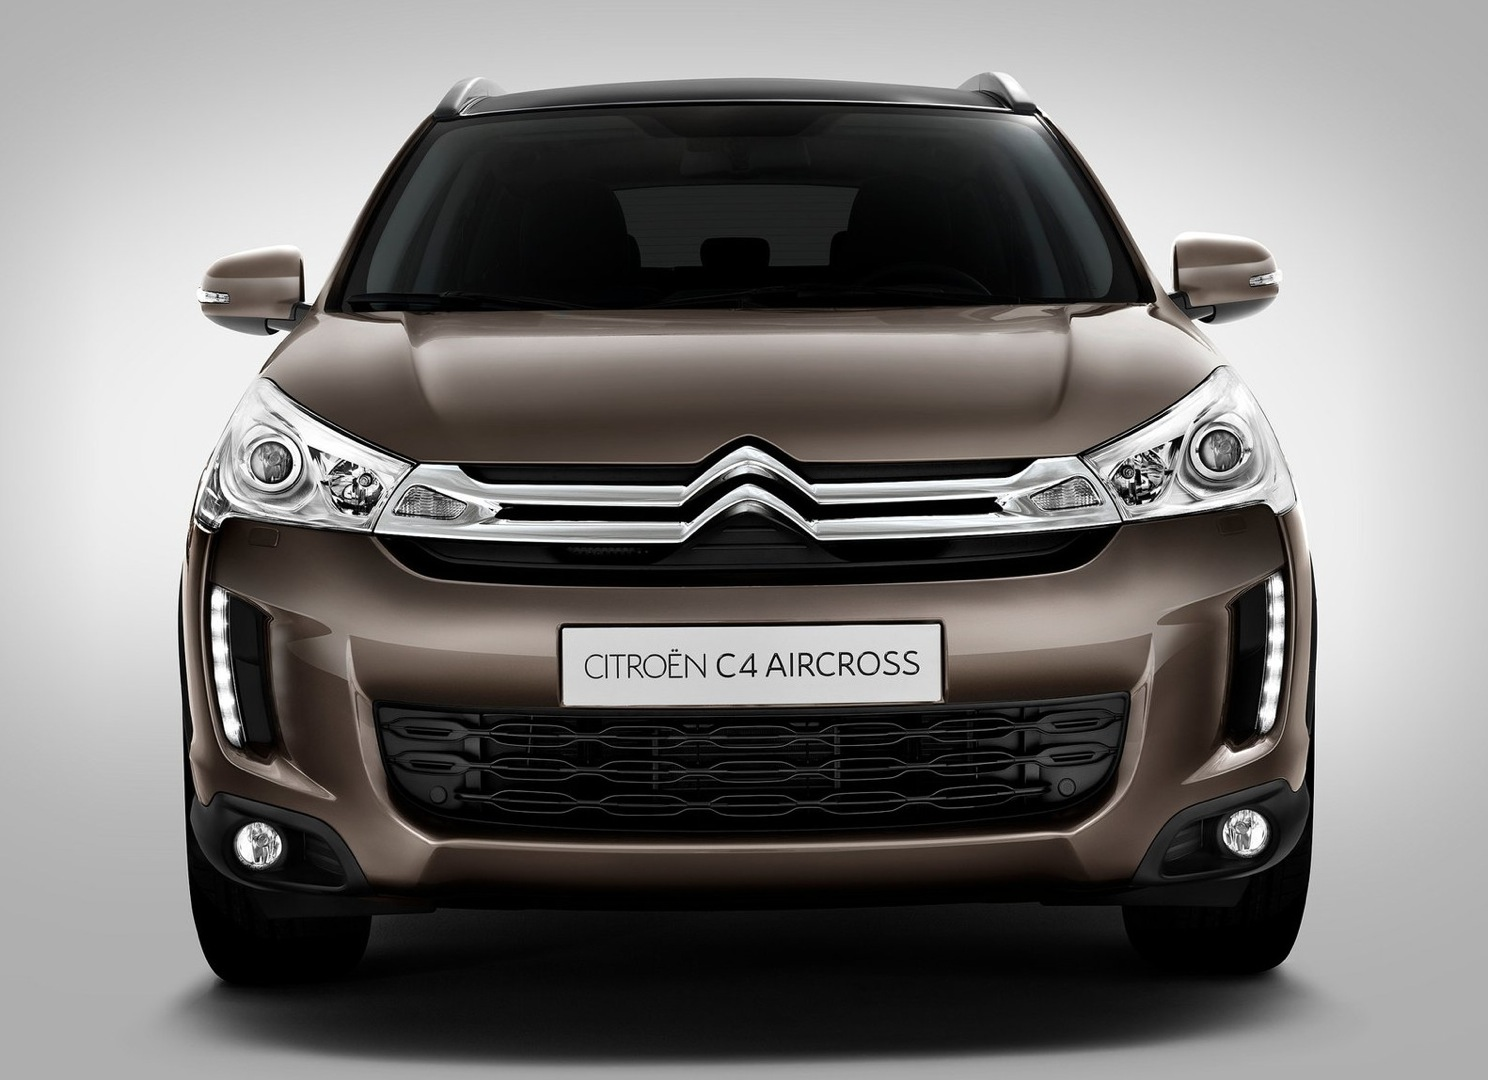 citroen c4 aircross specs 2012 2013 2014 2015 2016 2017 2018 autoevolution. Black Bedroom Furniture Sets. Home Design Ideas